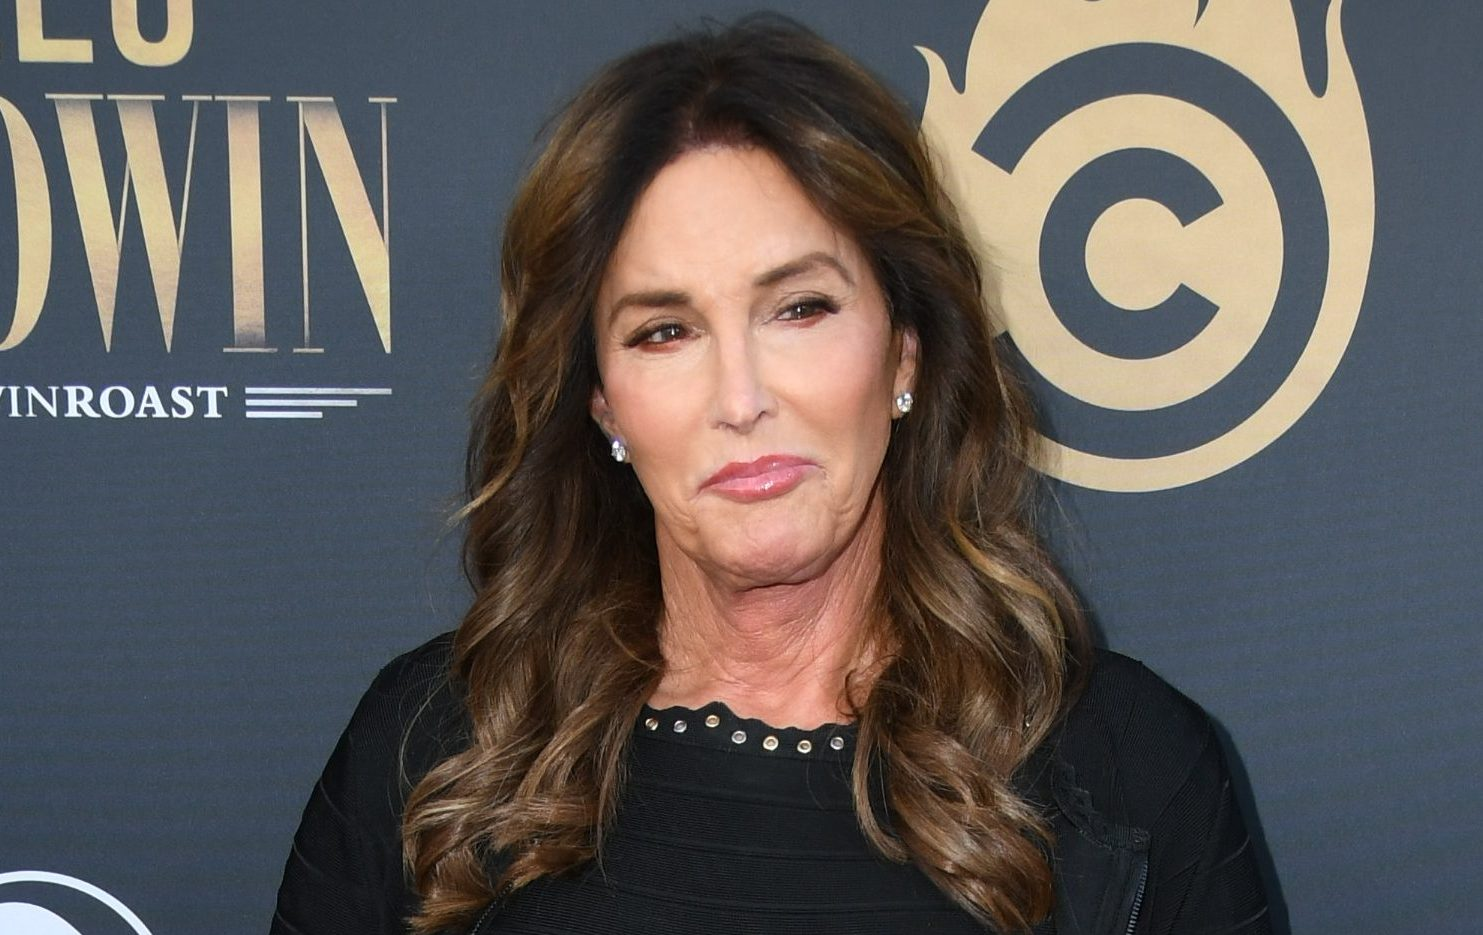 I'm A Celebrity: Caitlyn Jenner in emotional reunion with daughter Kendall in tonight's Coming Out show